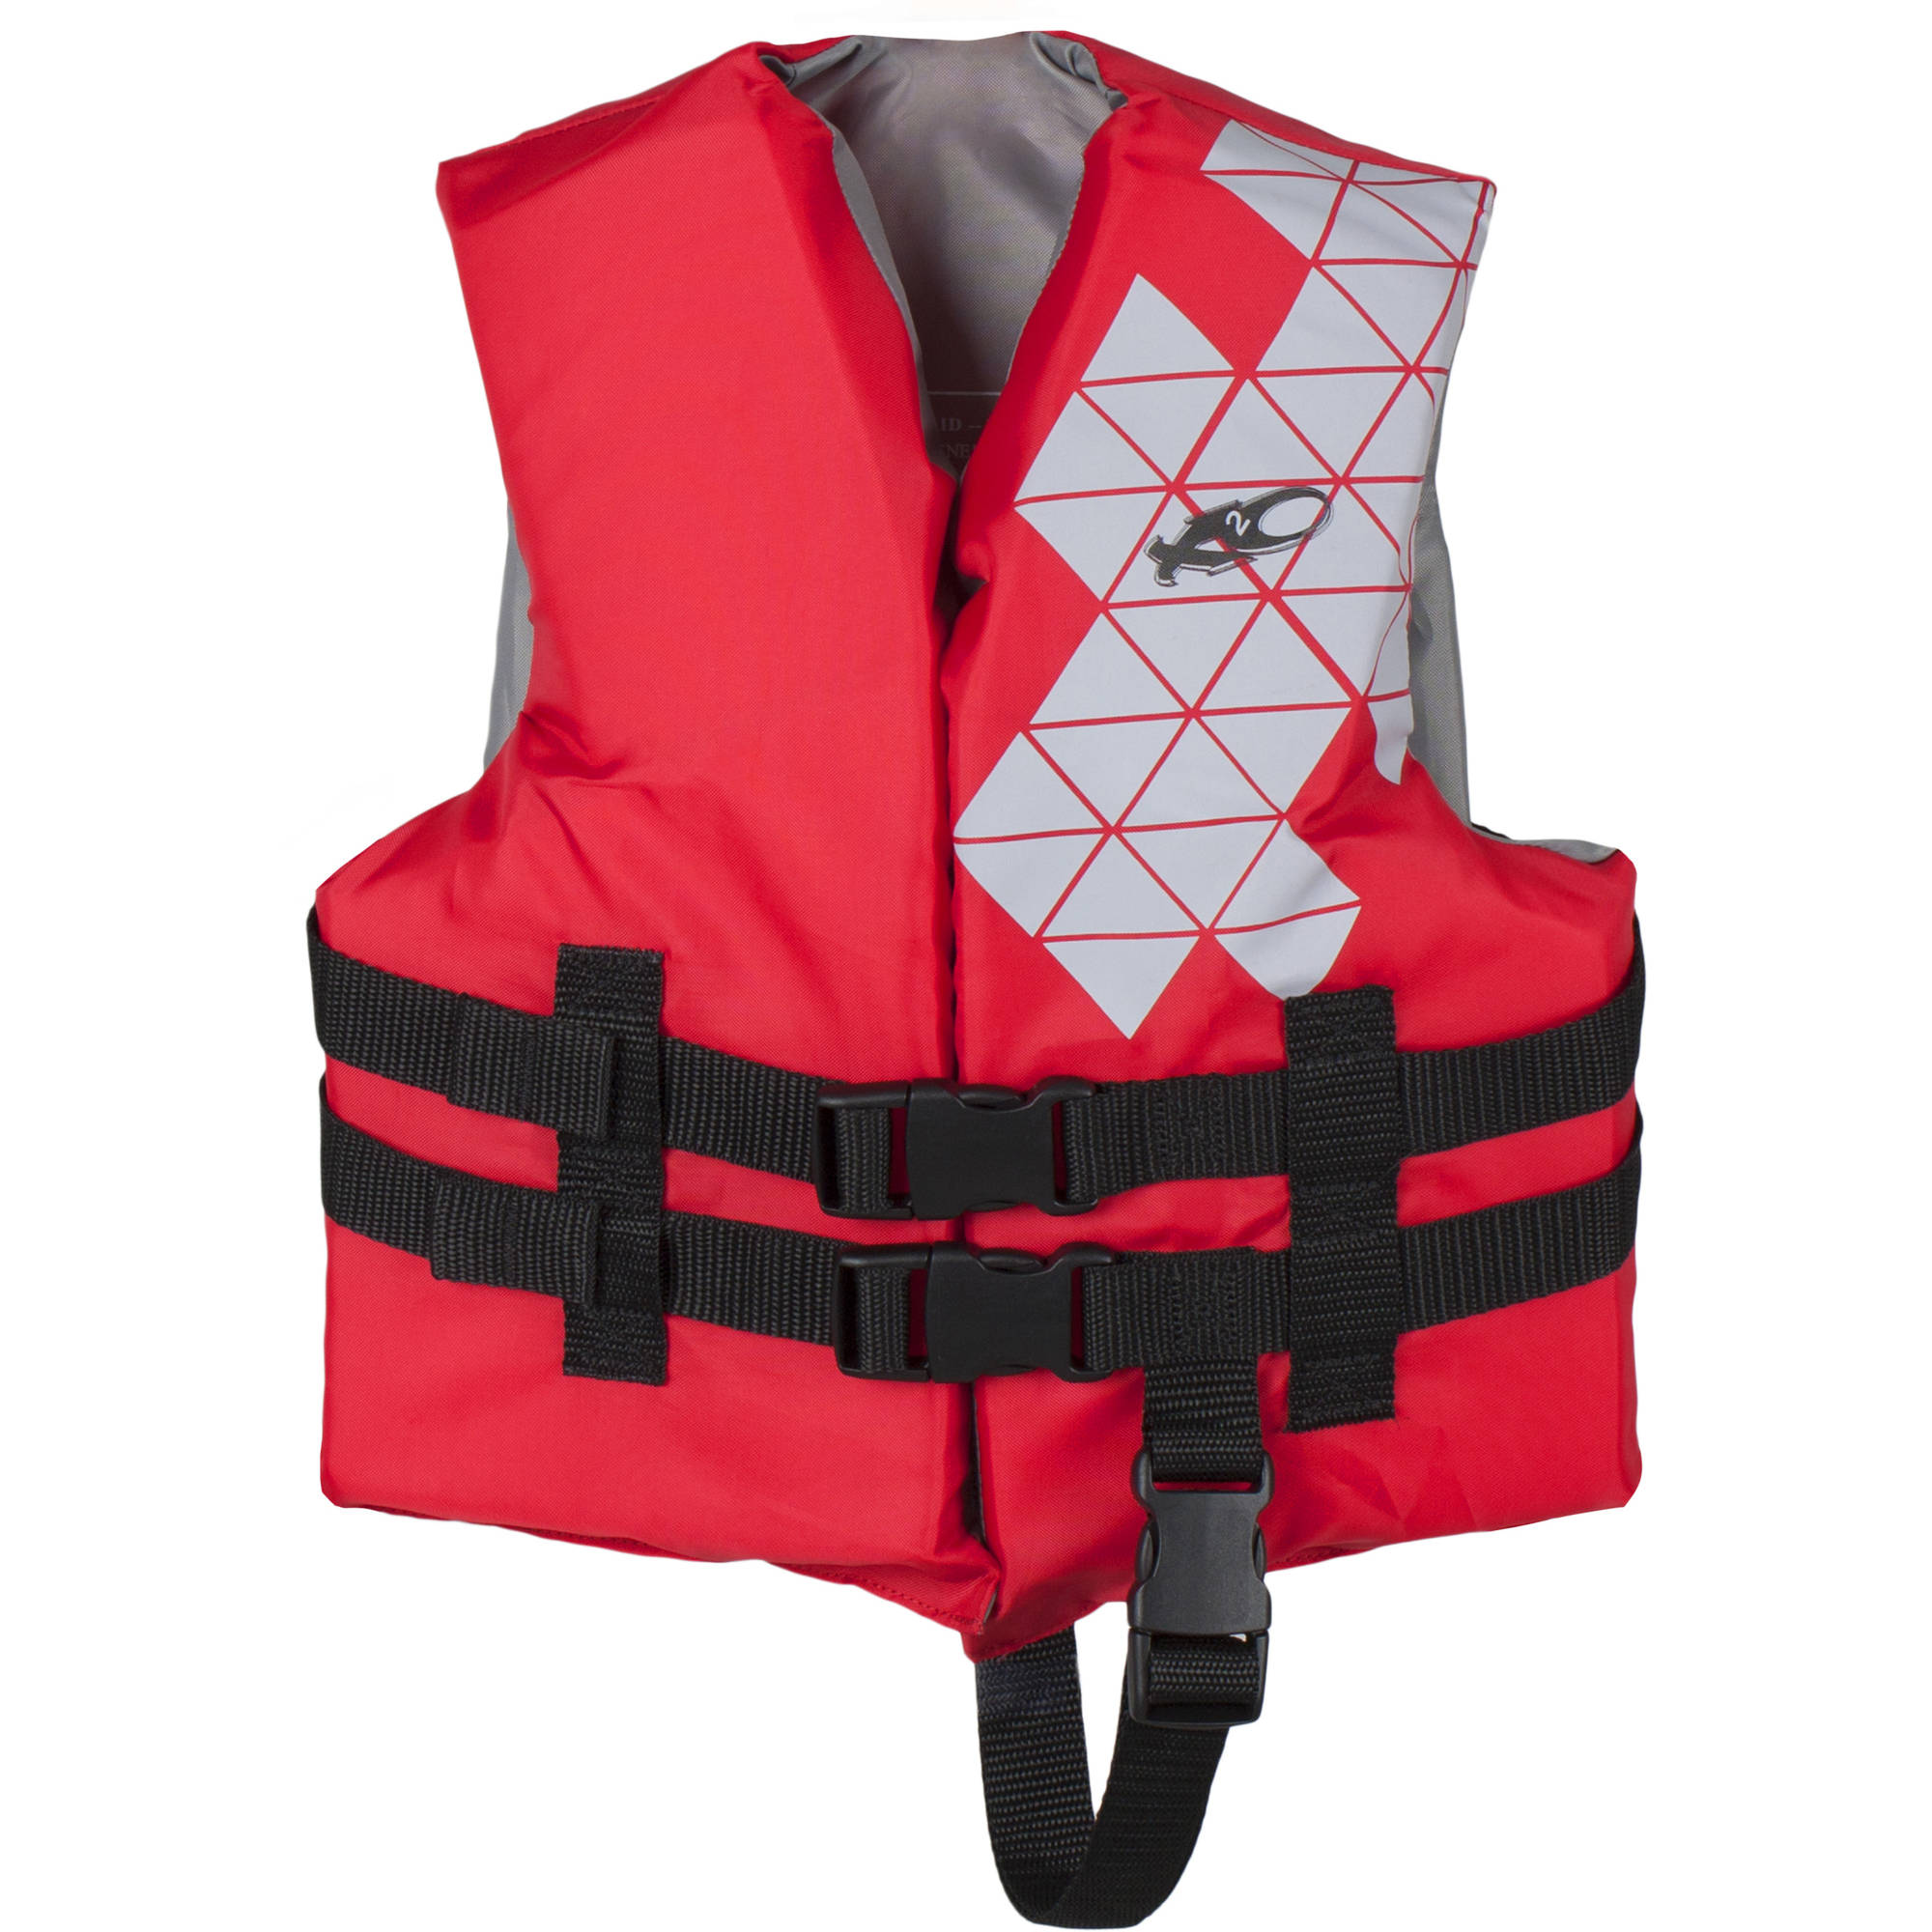 Child Open-Sided Vest, Red by